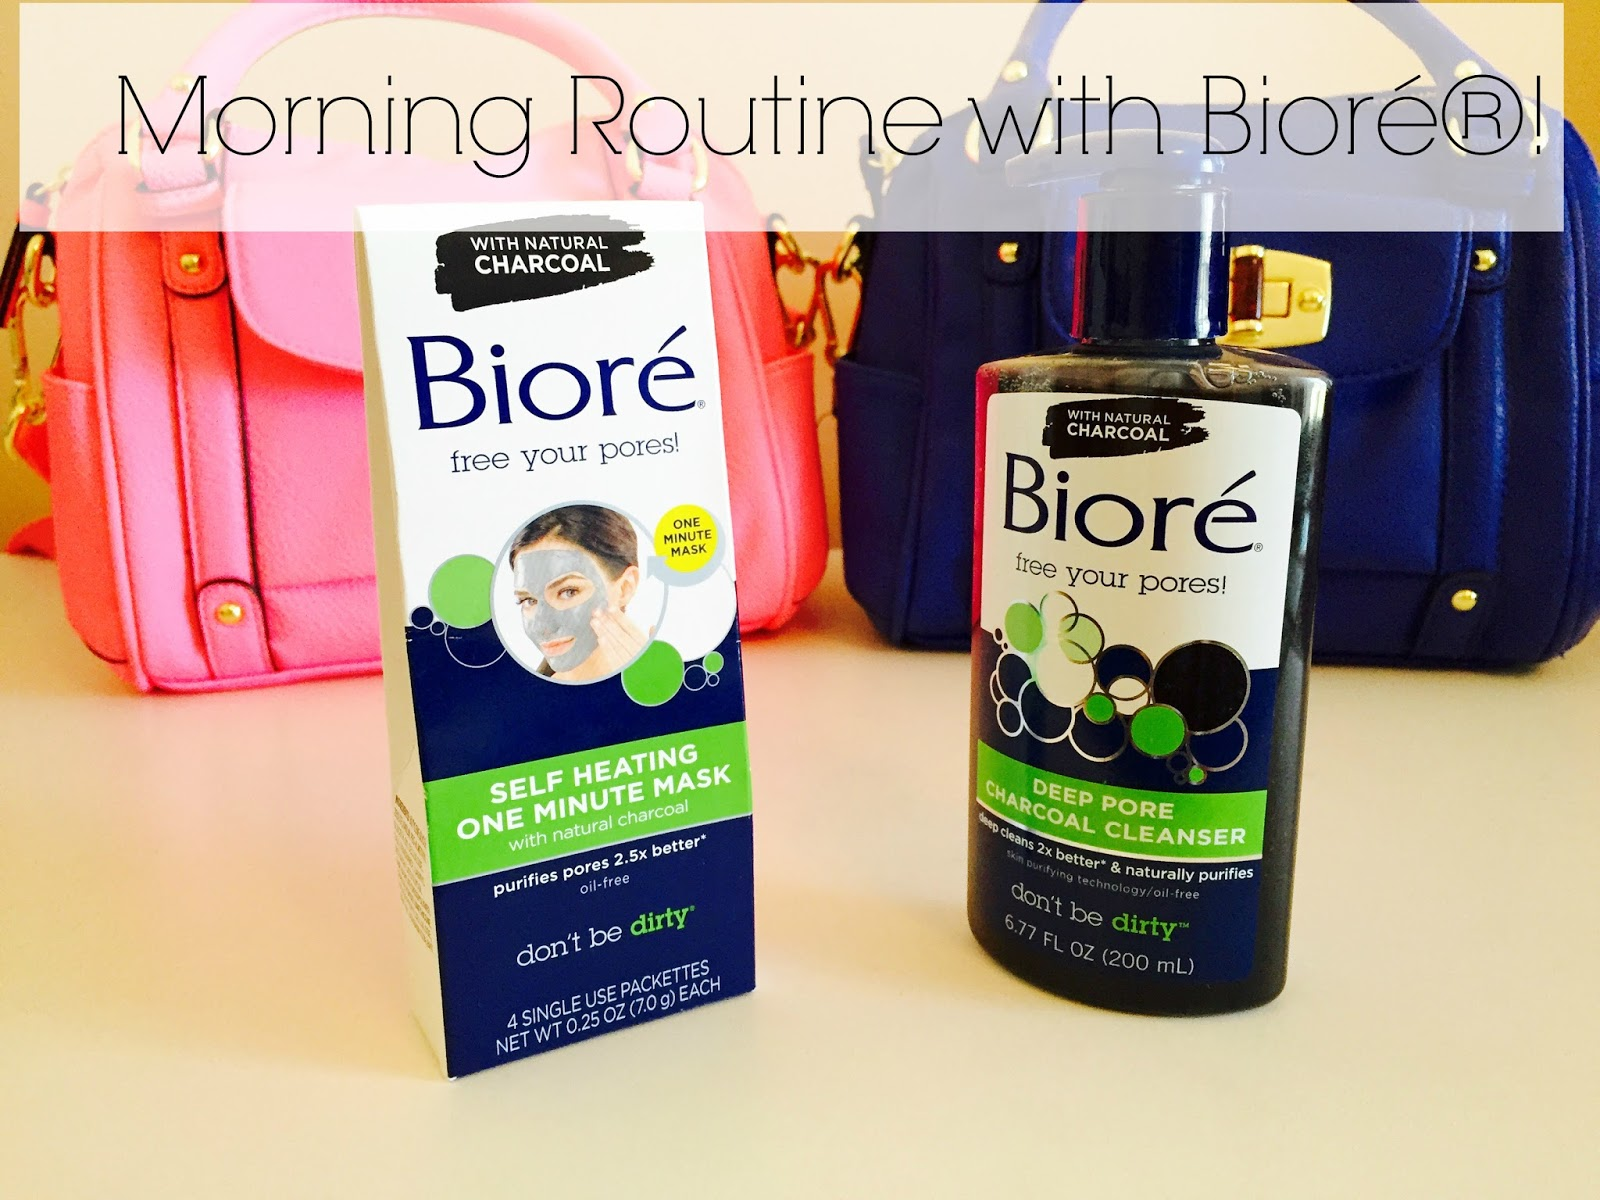 my biore morning routine, morning routine with biore, what I do to my face in the morning, #collectivebias, #biorestripedown, #cbias